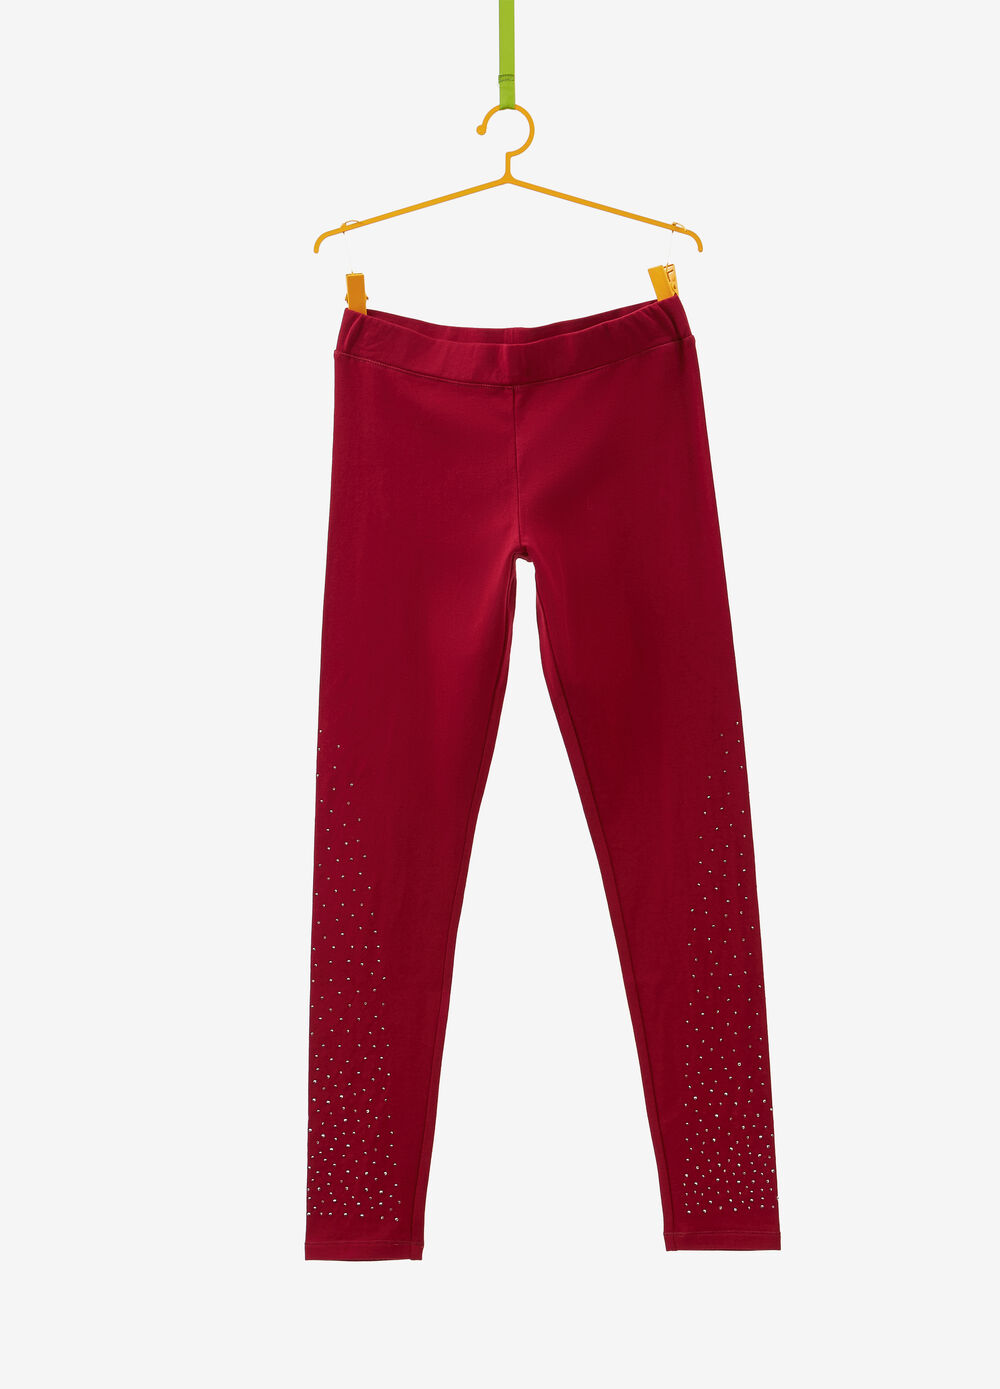 Cotton and viscose leggings with studs